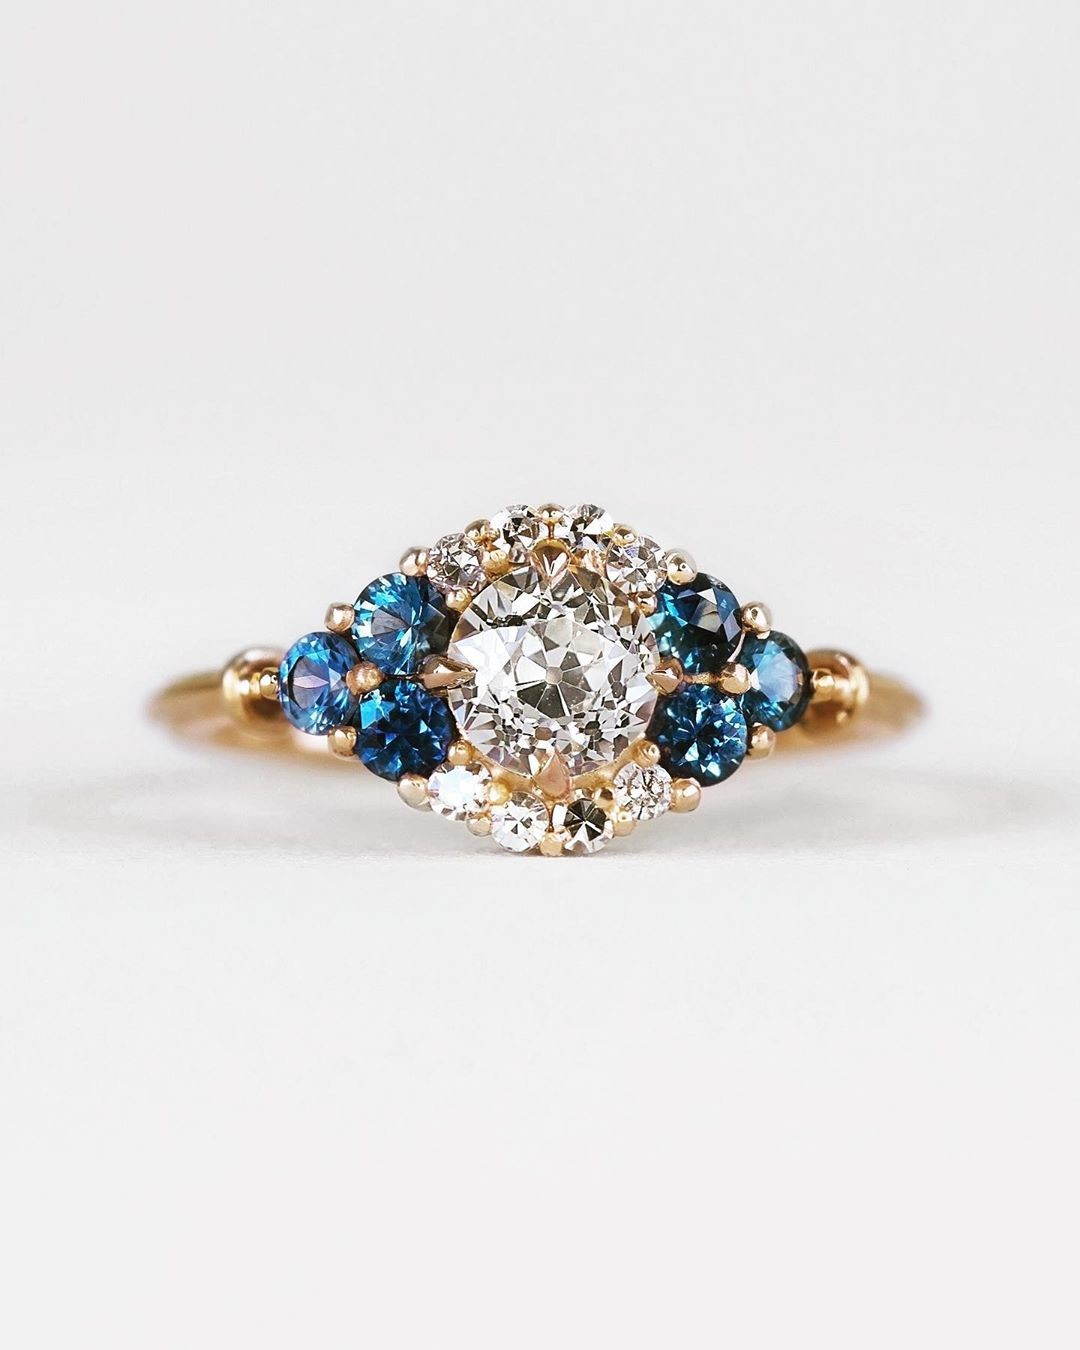 This ring can be my 🌞🌚✨💫 A glimmering assortment of antique post-consumer diamonds and Montana Sapphires create a unique